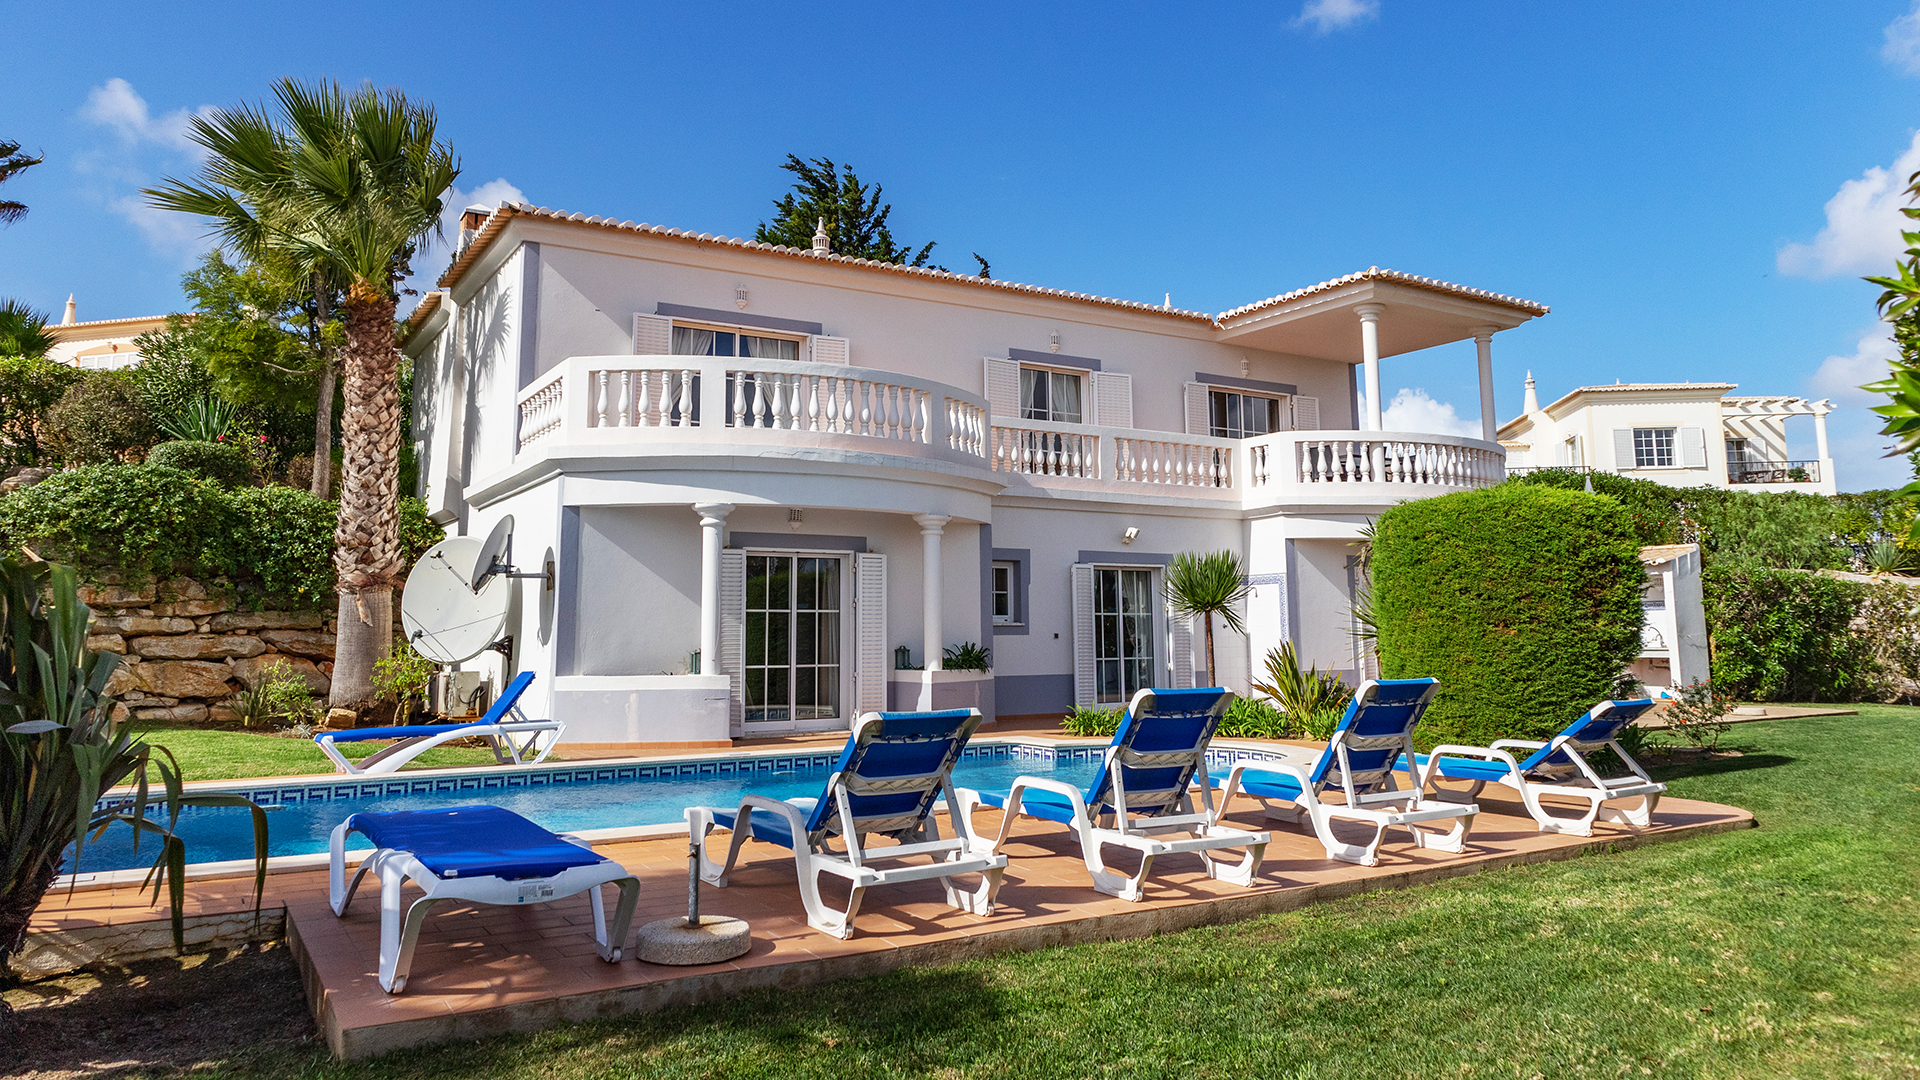 Beautiful 3 bedroom golf villa with private pool & garden, near Salema, West Algarve | LG1577 This fabulous 3-bedroom traditional style villa with sea views, private pool and landscaped garden is located on the prestigious Santo Antonio Golf resort, in Budens. A 5-minute drive from the popular Salema beach and only 10 minutes from Praia da Luz coastal village. There are on-site facilities including clubhouse, restaurant and spa. The 3 double bedrooms are on the lower ground floor and all living space on the entrance level. The open plan living area, kitchen and wrap-around terrace provide distant views to the ocean. An ideal home in the sun for golfers and sun worshippers alike or someone looking for a good rental investment!